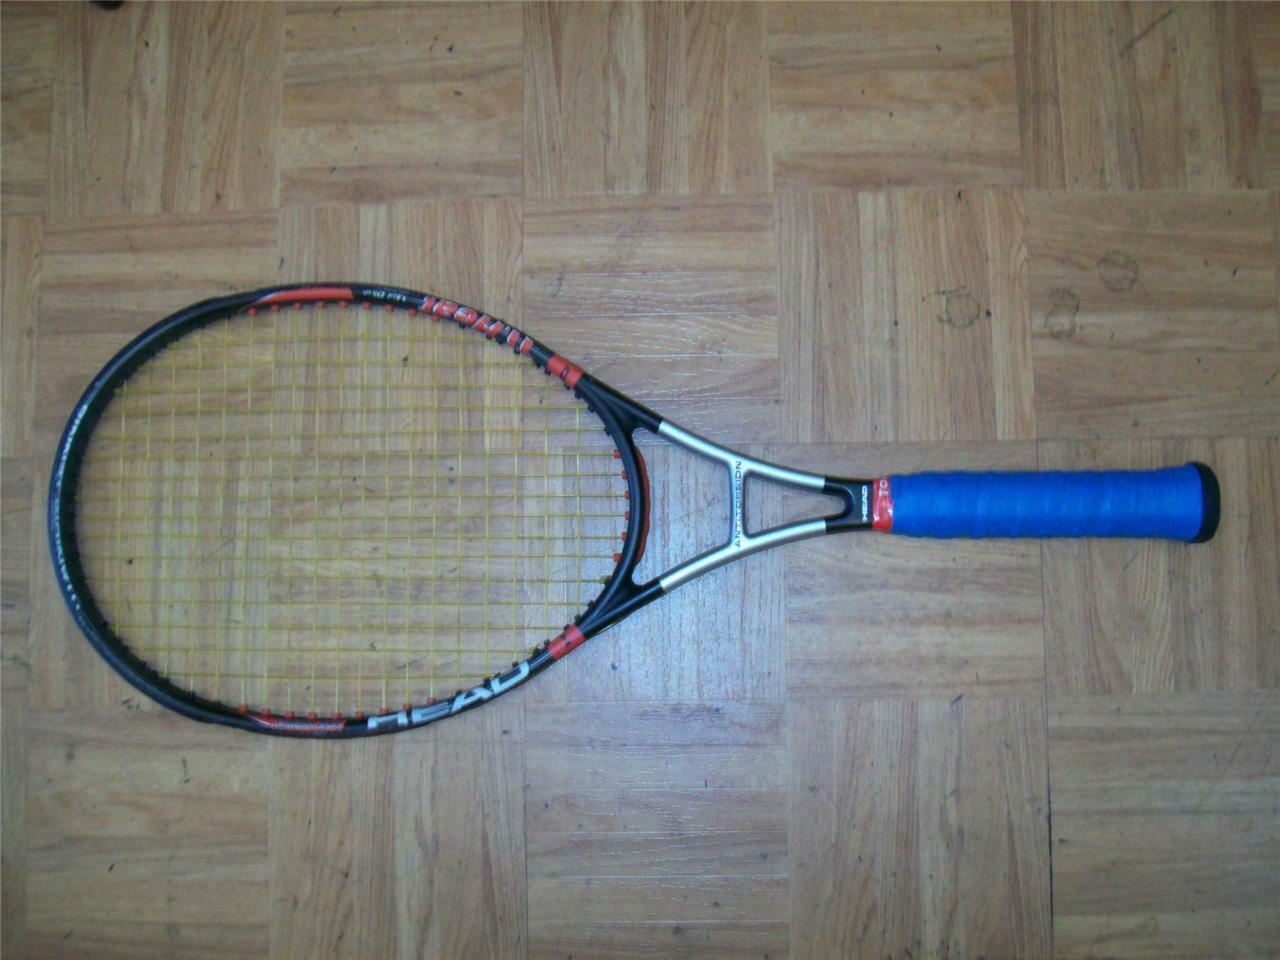 Head Ti. Heat Comfort Zone Midplus 102 4 3 8 grip Tennis Racquet